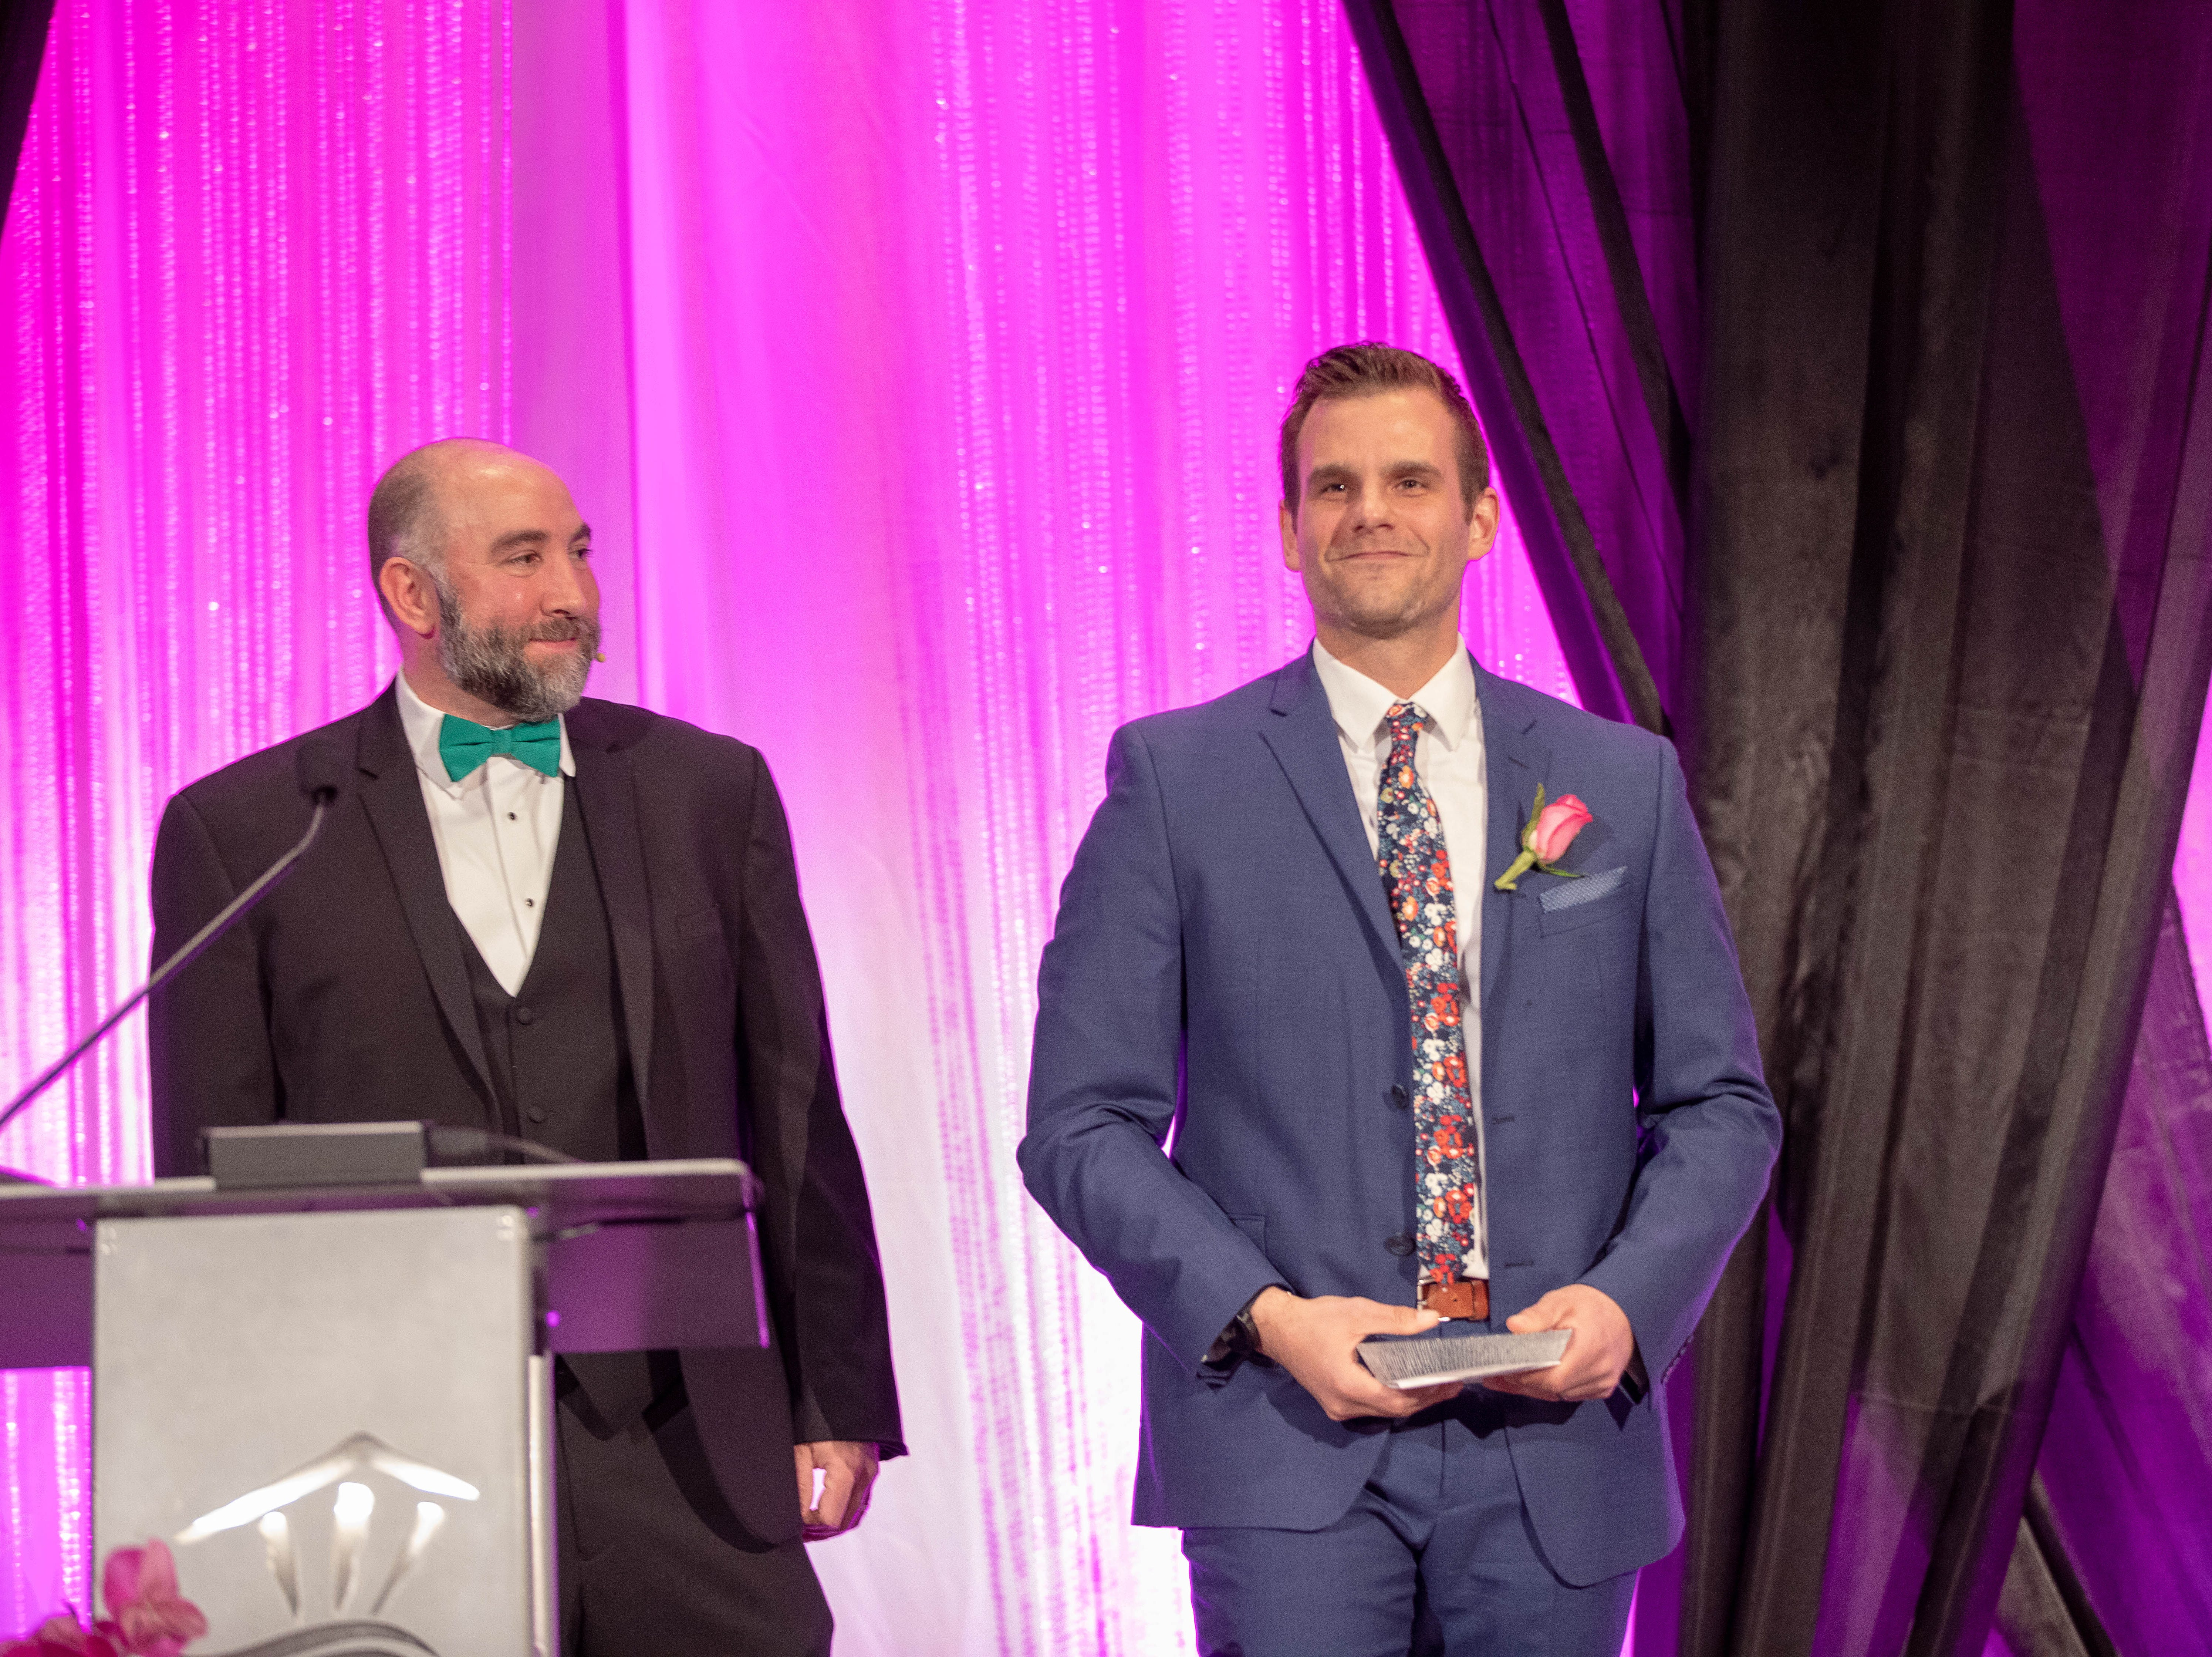 Host TJ Sullivan, Owner of Huggins Insurance, and Alvin Klausen, of Vagabond Brewing, winner of the Outstanding Young Professional award at the First Citizen Awards Banquet March 8, 2019, at the Salem Convention Center.